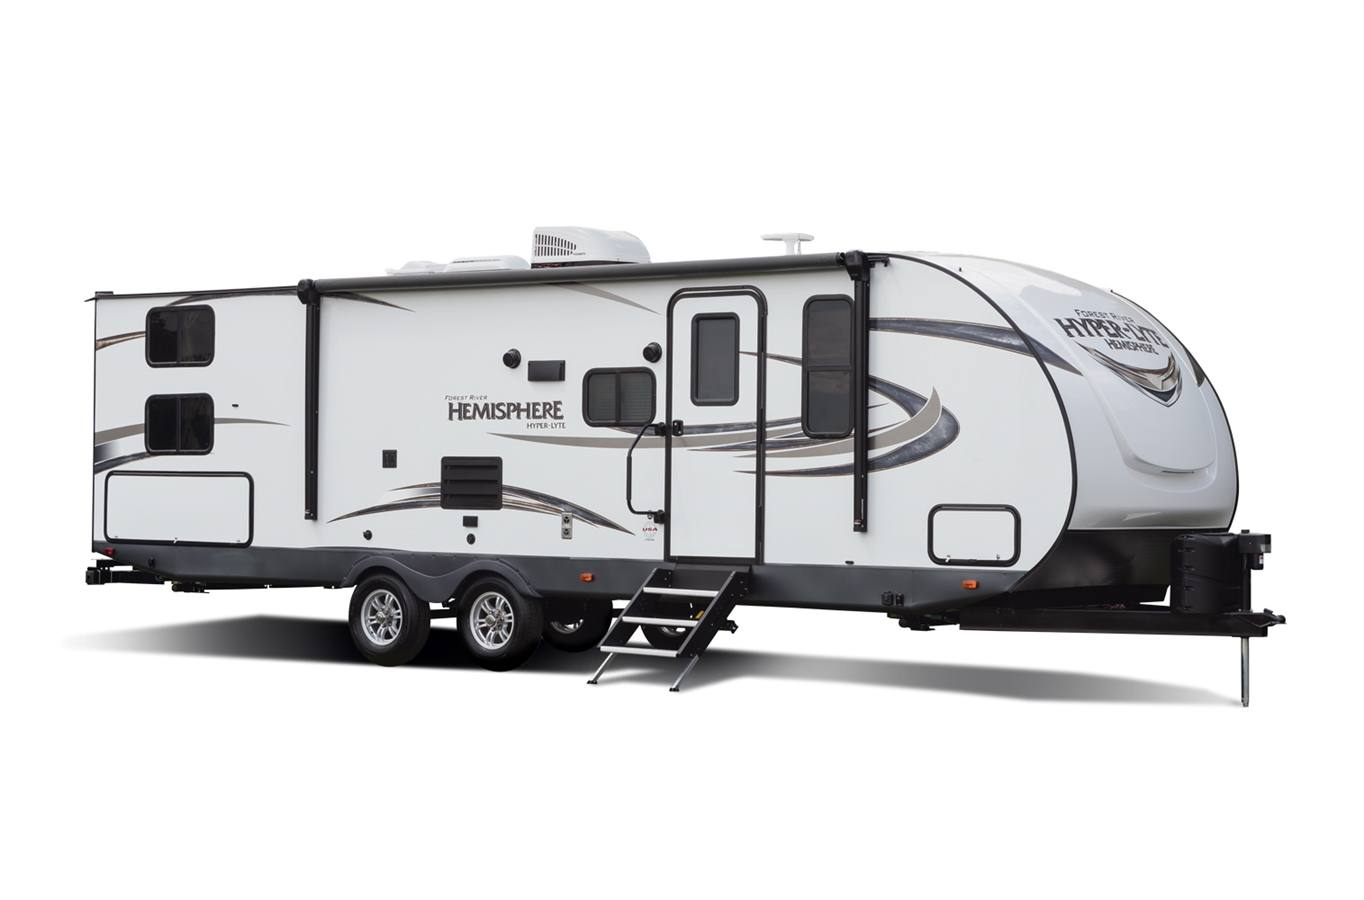 2019 salem by forest river 29rlshl salem hemisphere hyper-lyte fifth wheels